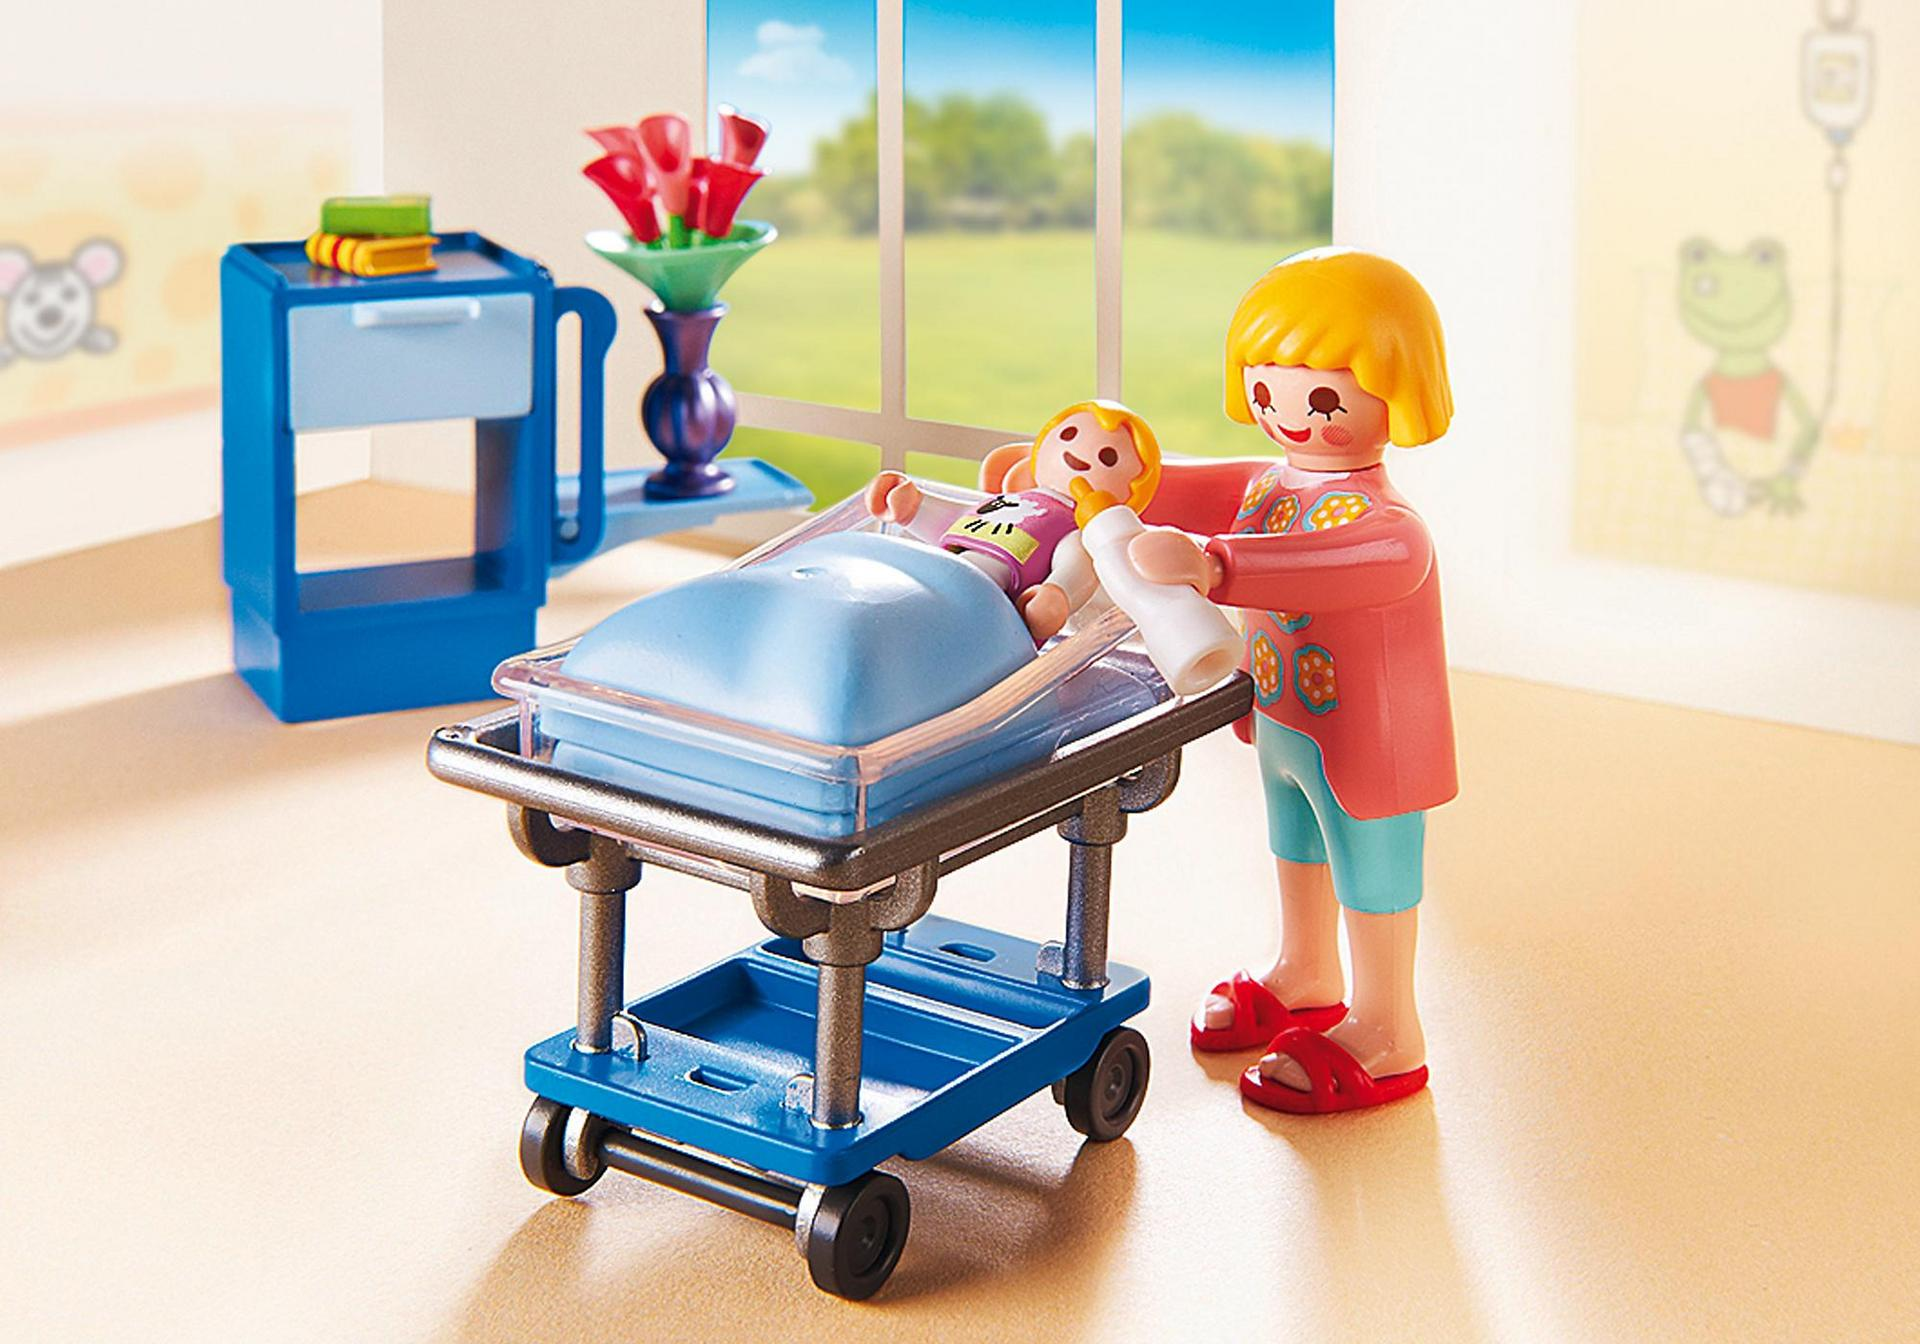 Maternity room 6660 playmobil for Table playmobil